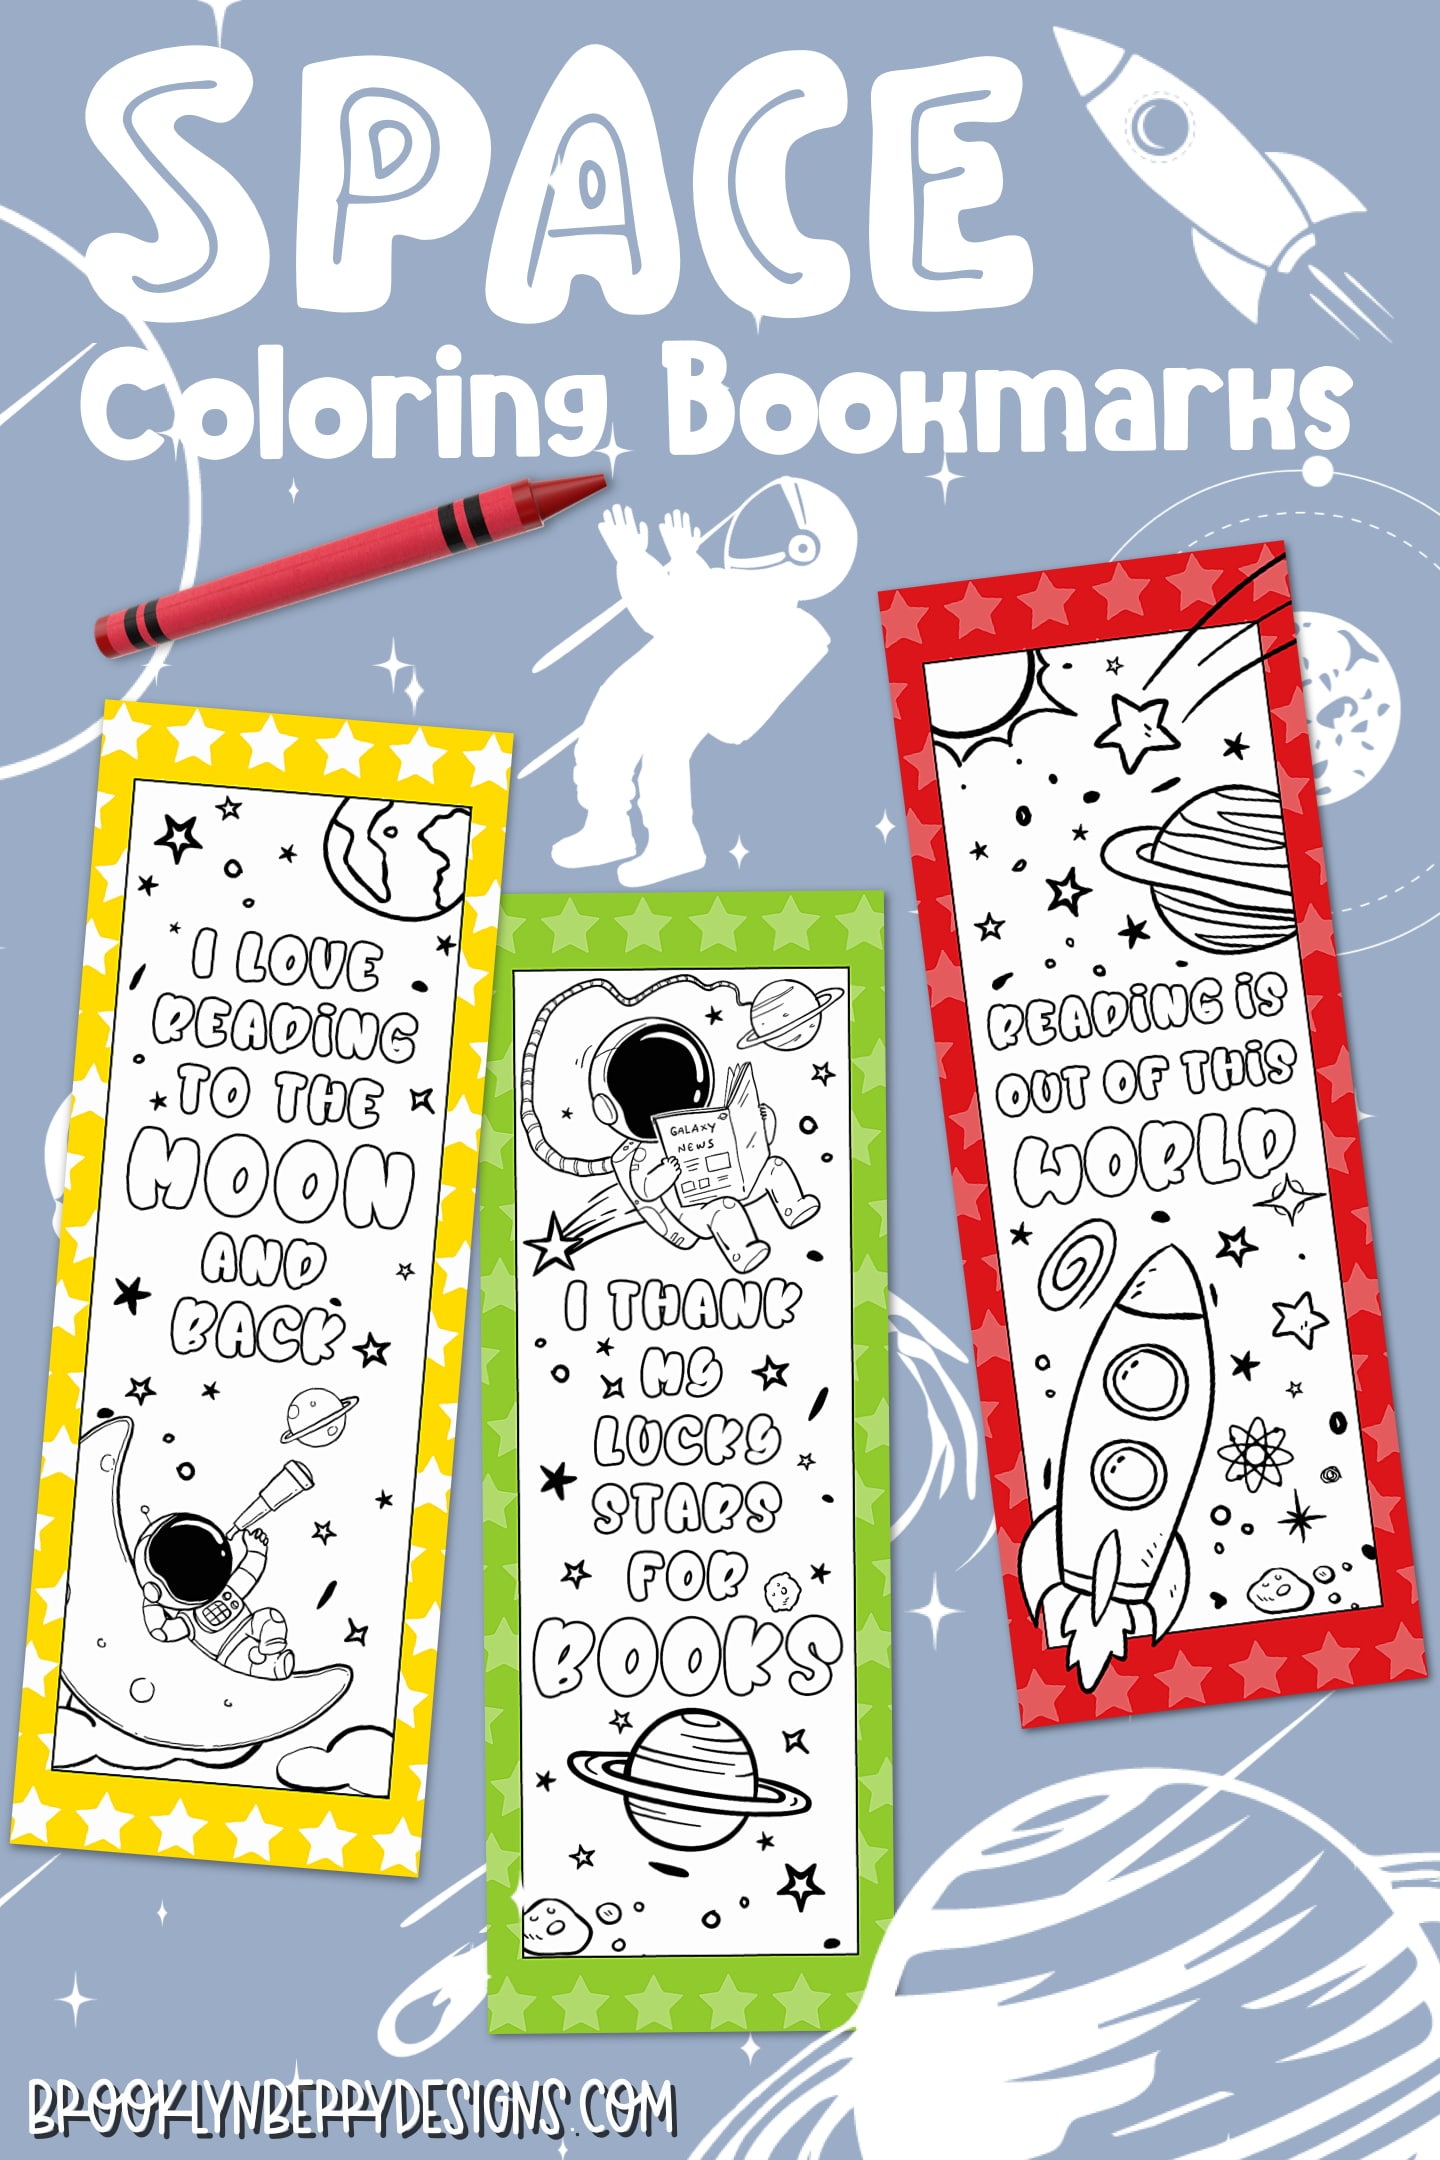 Free Space Coloring Bookmarks - great for keeping kids entertained while learning at home. via @brookeberry